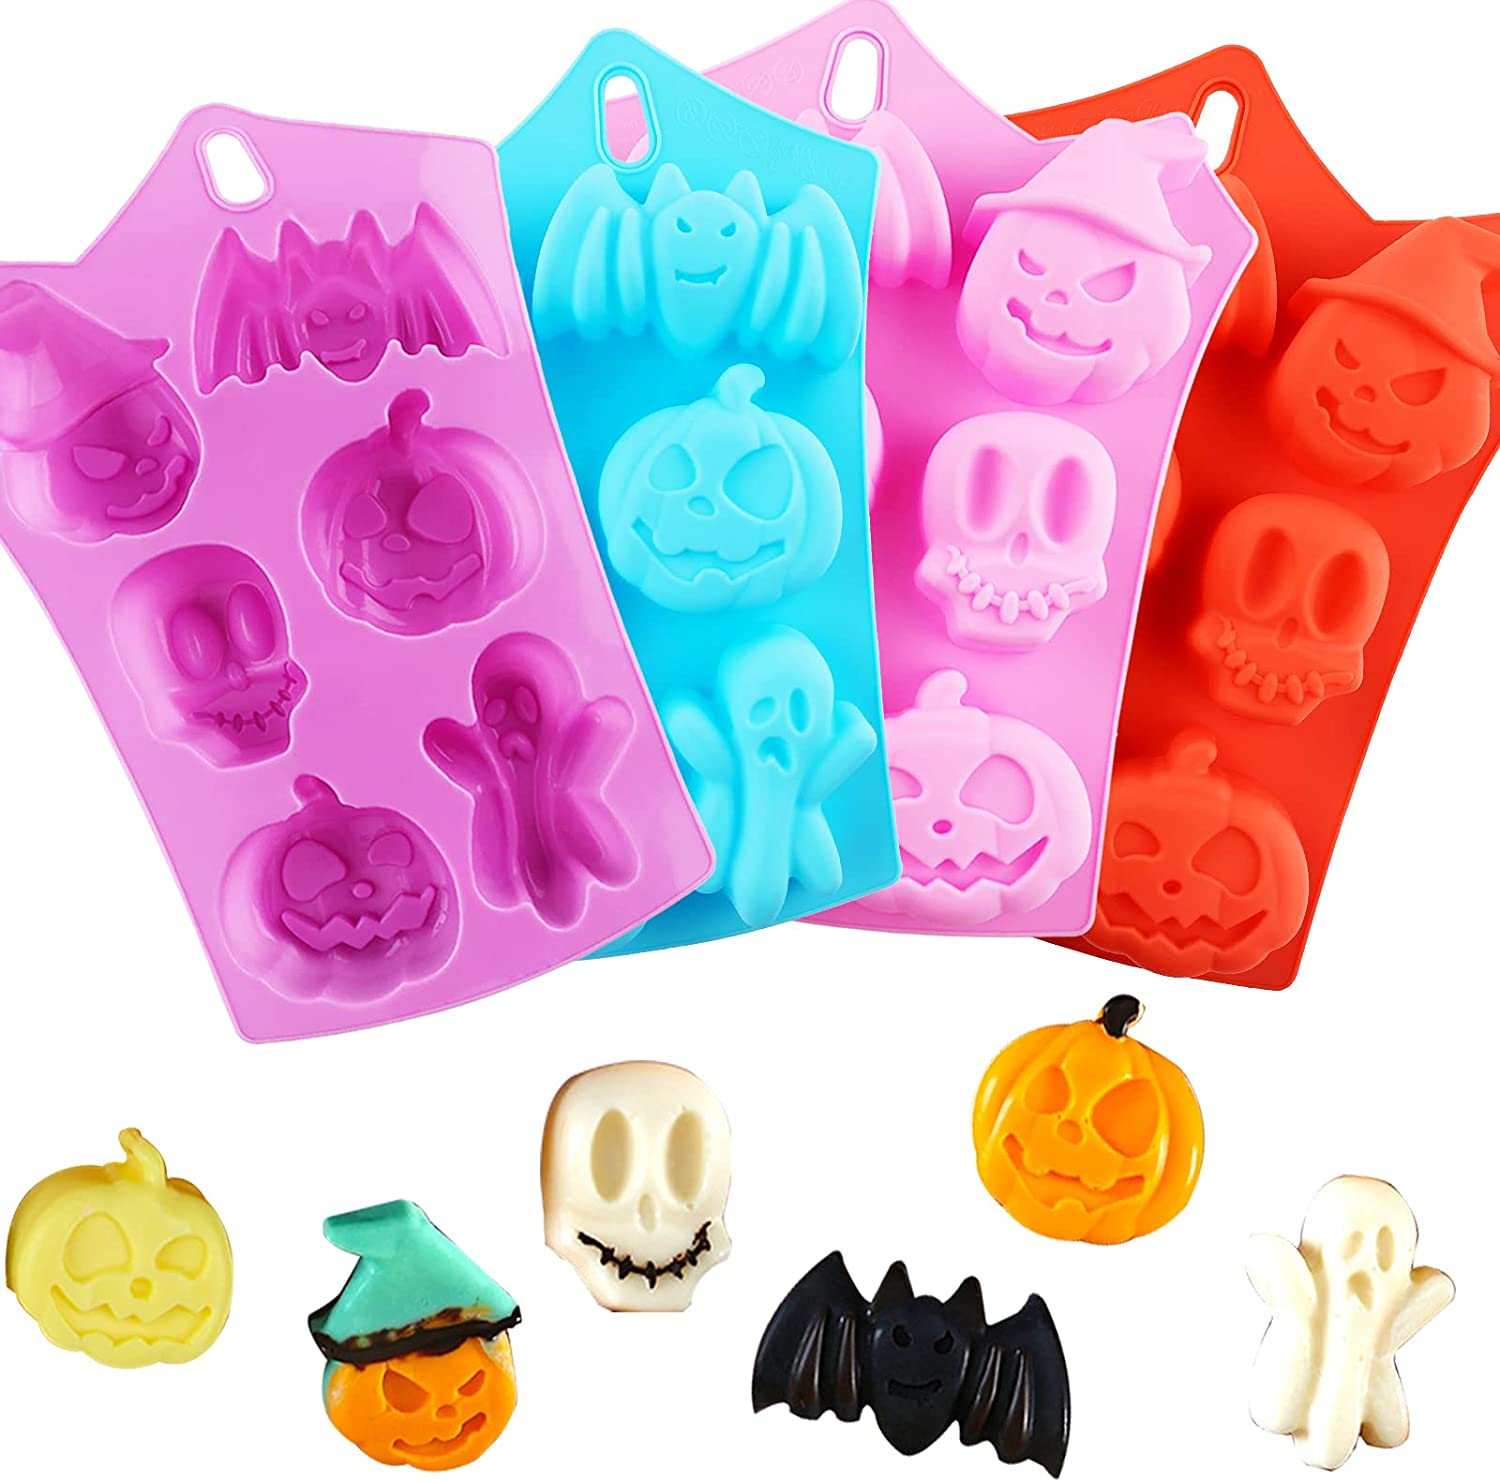 Pumpkin Silicone Mold Halloween Cake Mold 4 PIECE Chocolate Molds Silicone with Ghost Pumpkin Bat & Witch Hat Cookie Molds for Candy Gummy Jello Ice Cube Crayon Melt Biscuits,Soap Pumpkin Baking Mold